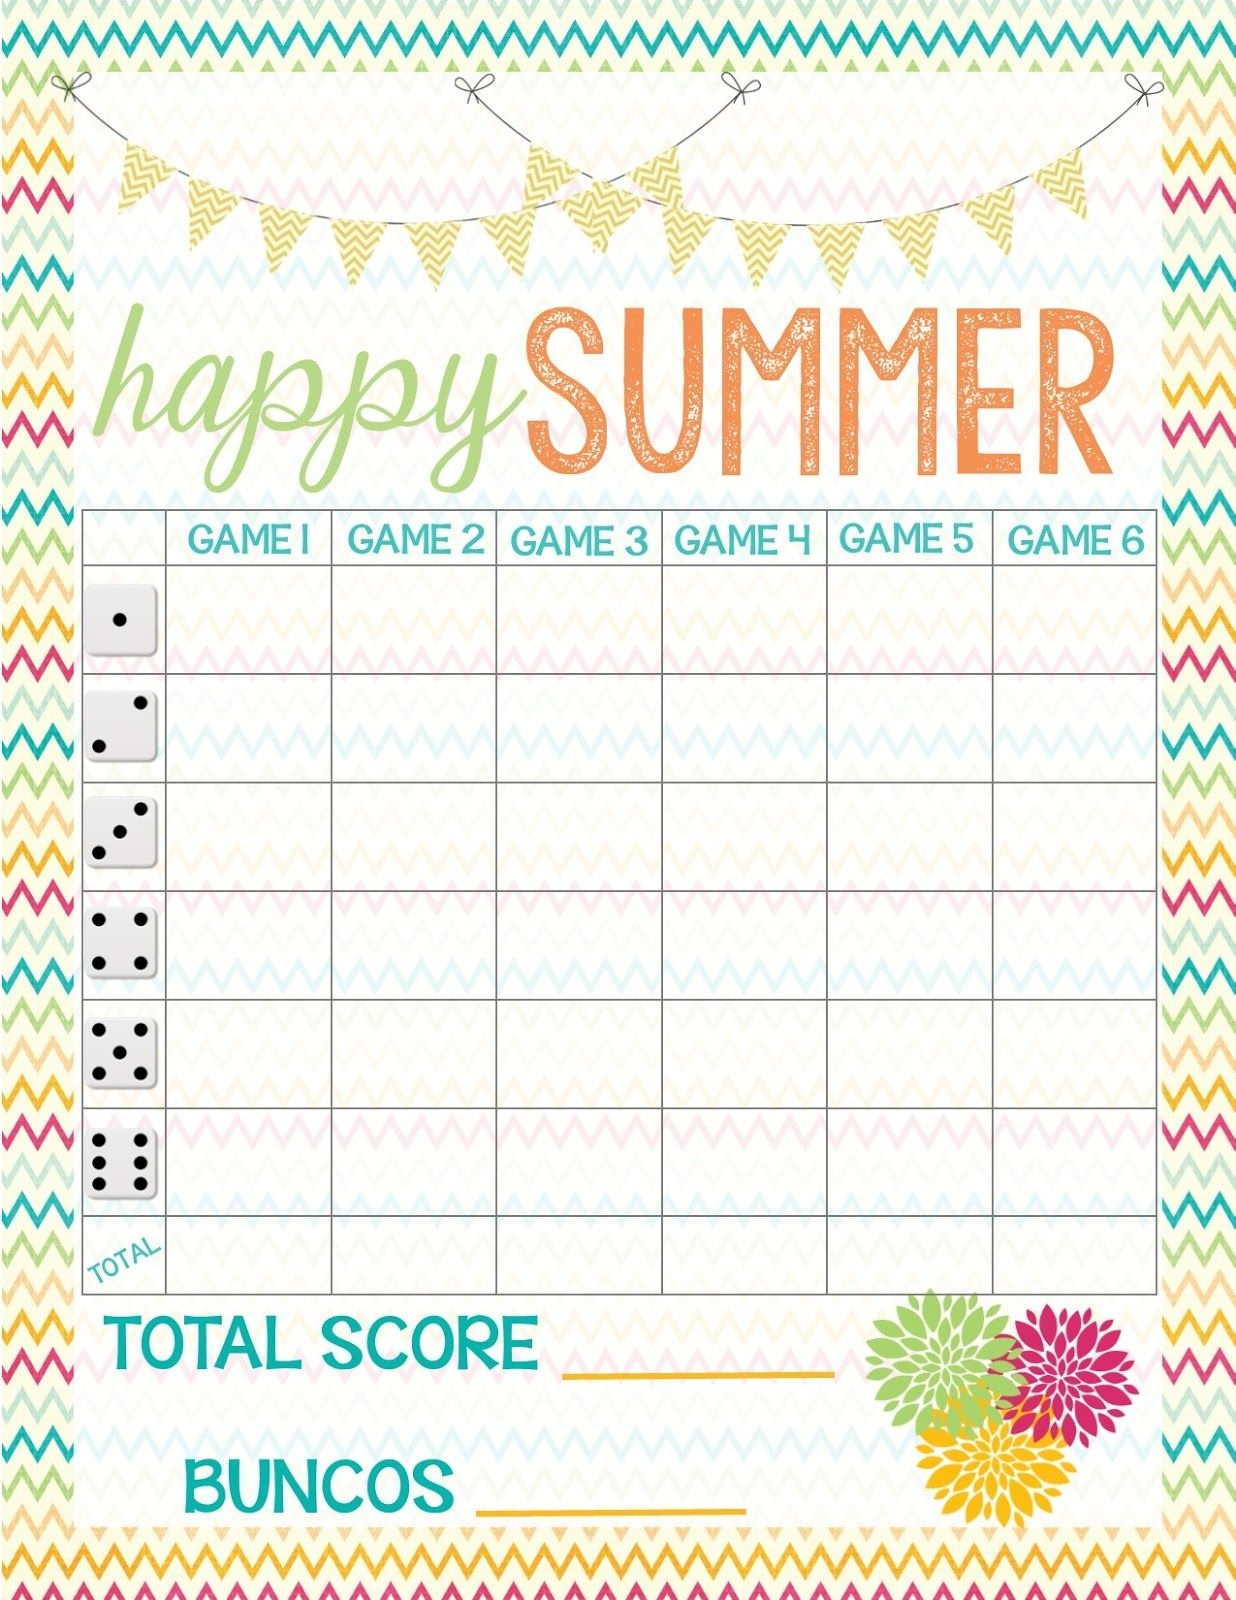 Recipes From Stephanie: Free Bunco Score Sheet | Bunco In 2019 - Printable Bunco Score Cards Free